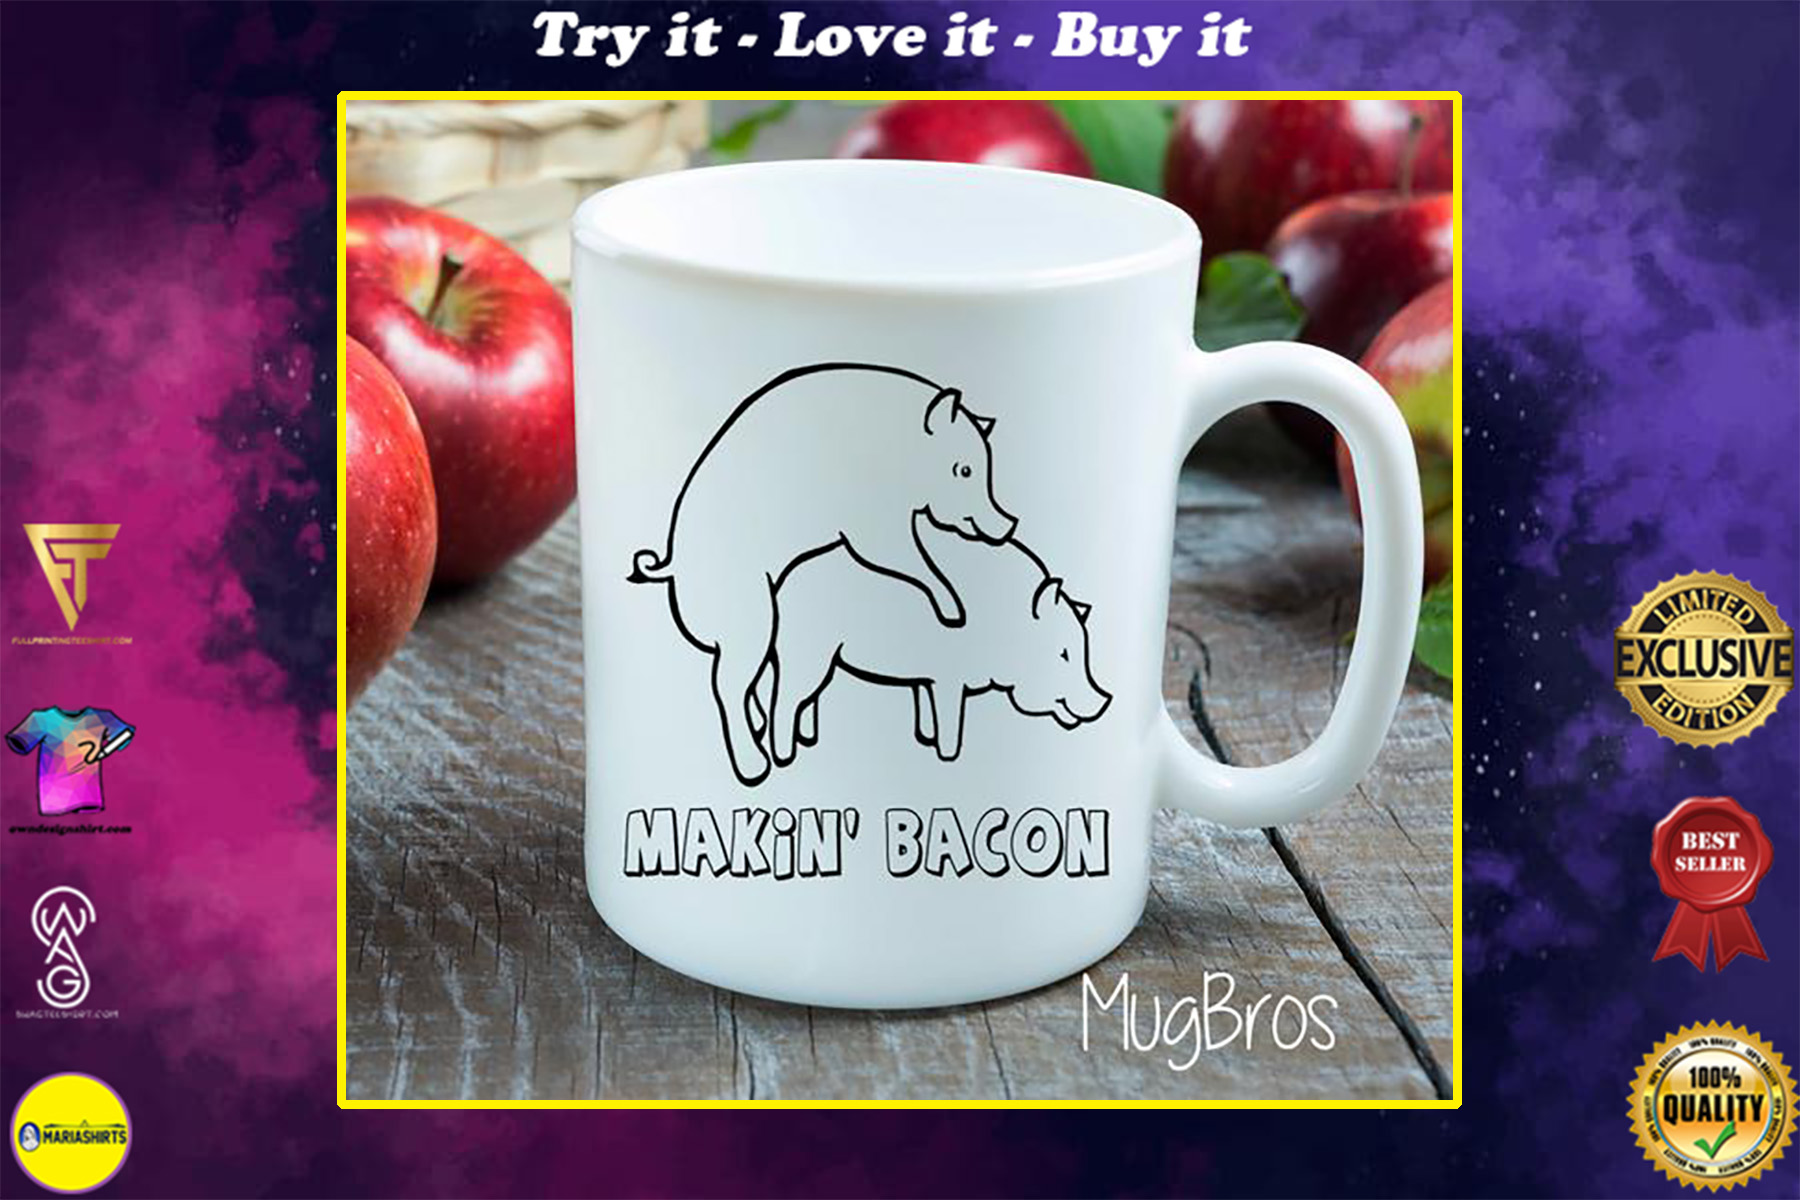 making bacon funny gift idea coffee cup